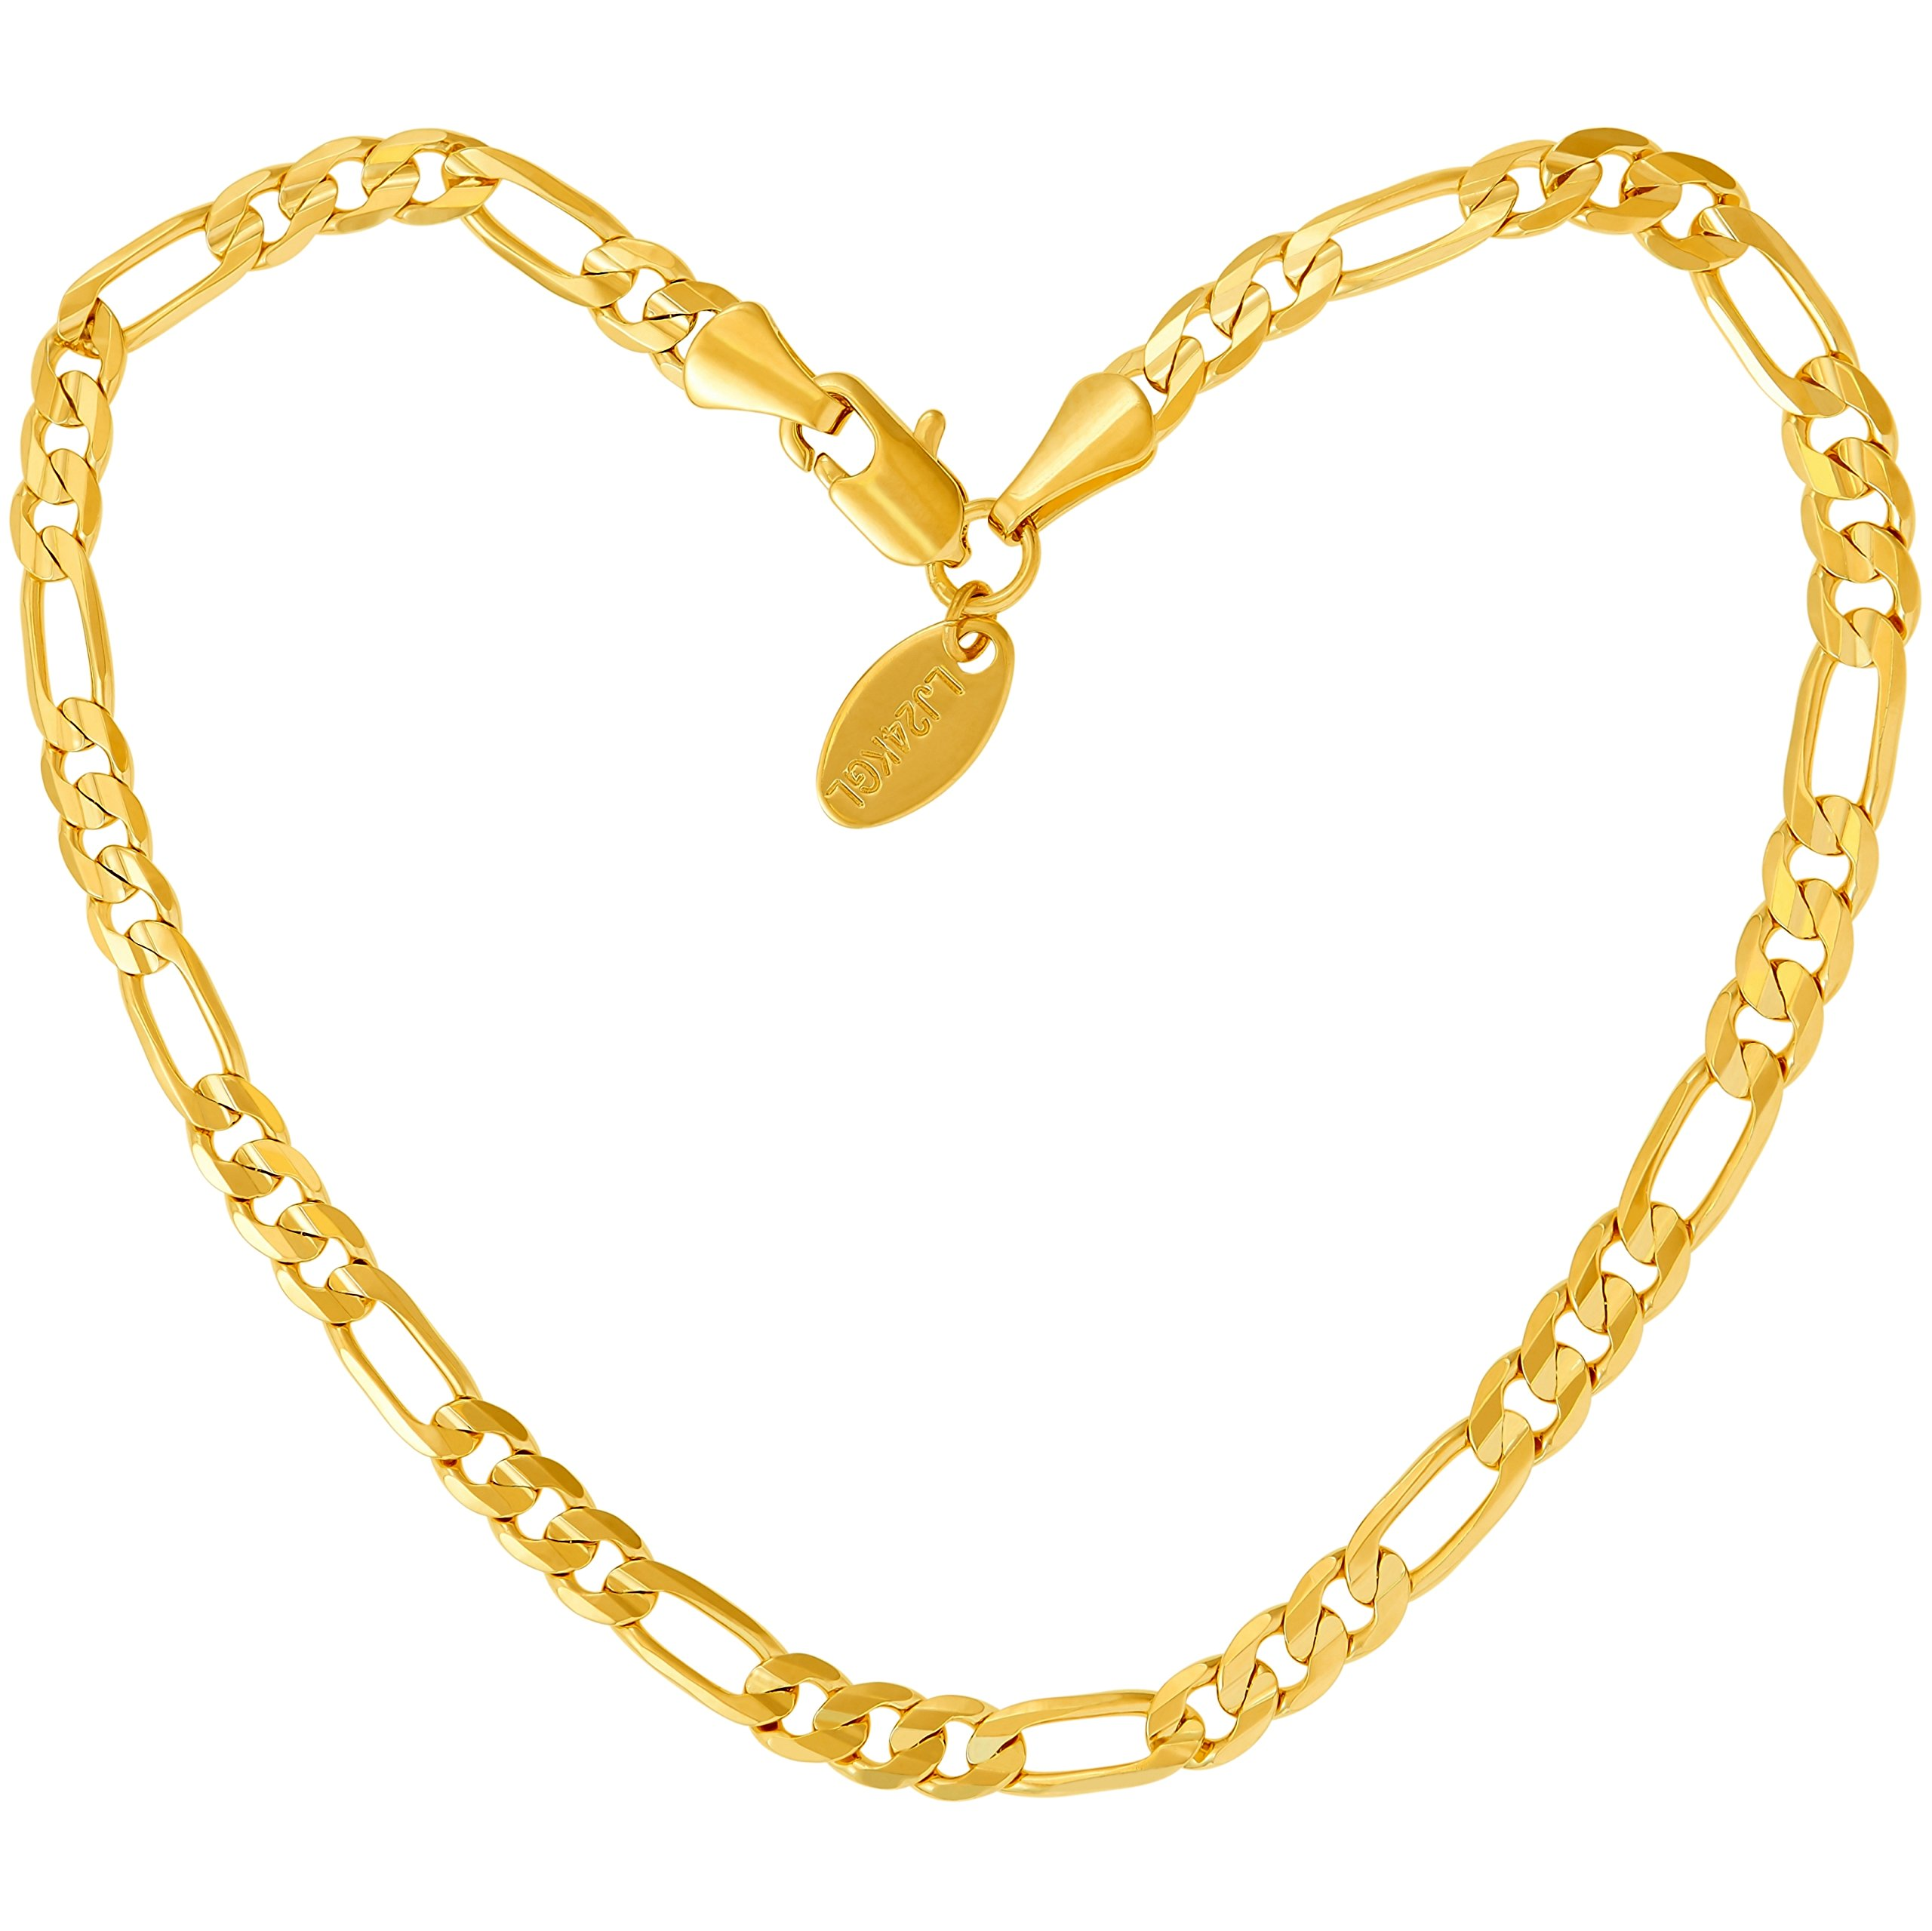 Lifetime Jewelry Gold Ankle Bracelets for Women Men & Teen Girls [ 24k Real Gold Plated 4mm Figaro Chain Anklet ] Beach or Party Foot Jewelry 9'' 10'' & 11'' (10.0, Gold-Plated-Bronze) by Lifetime Jewelry